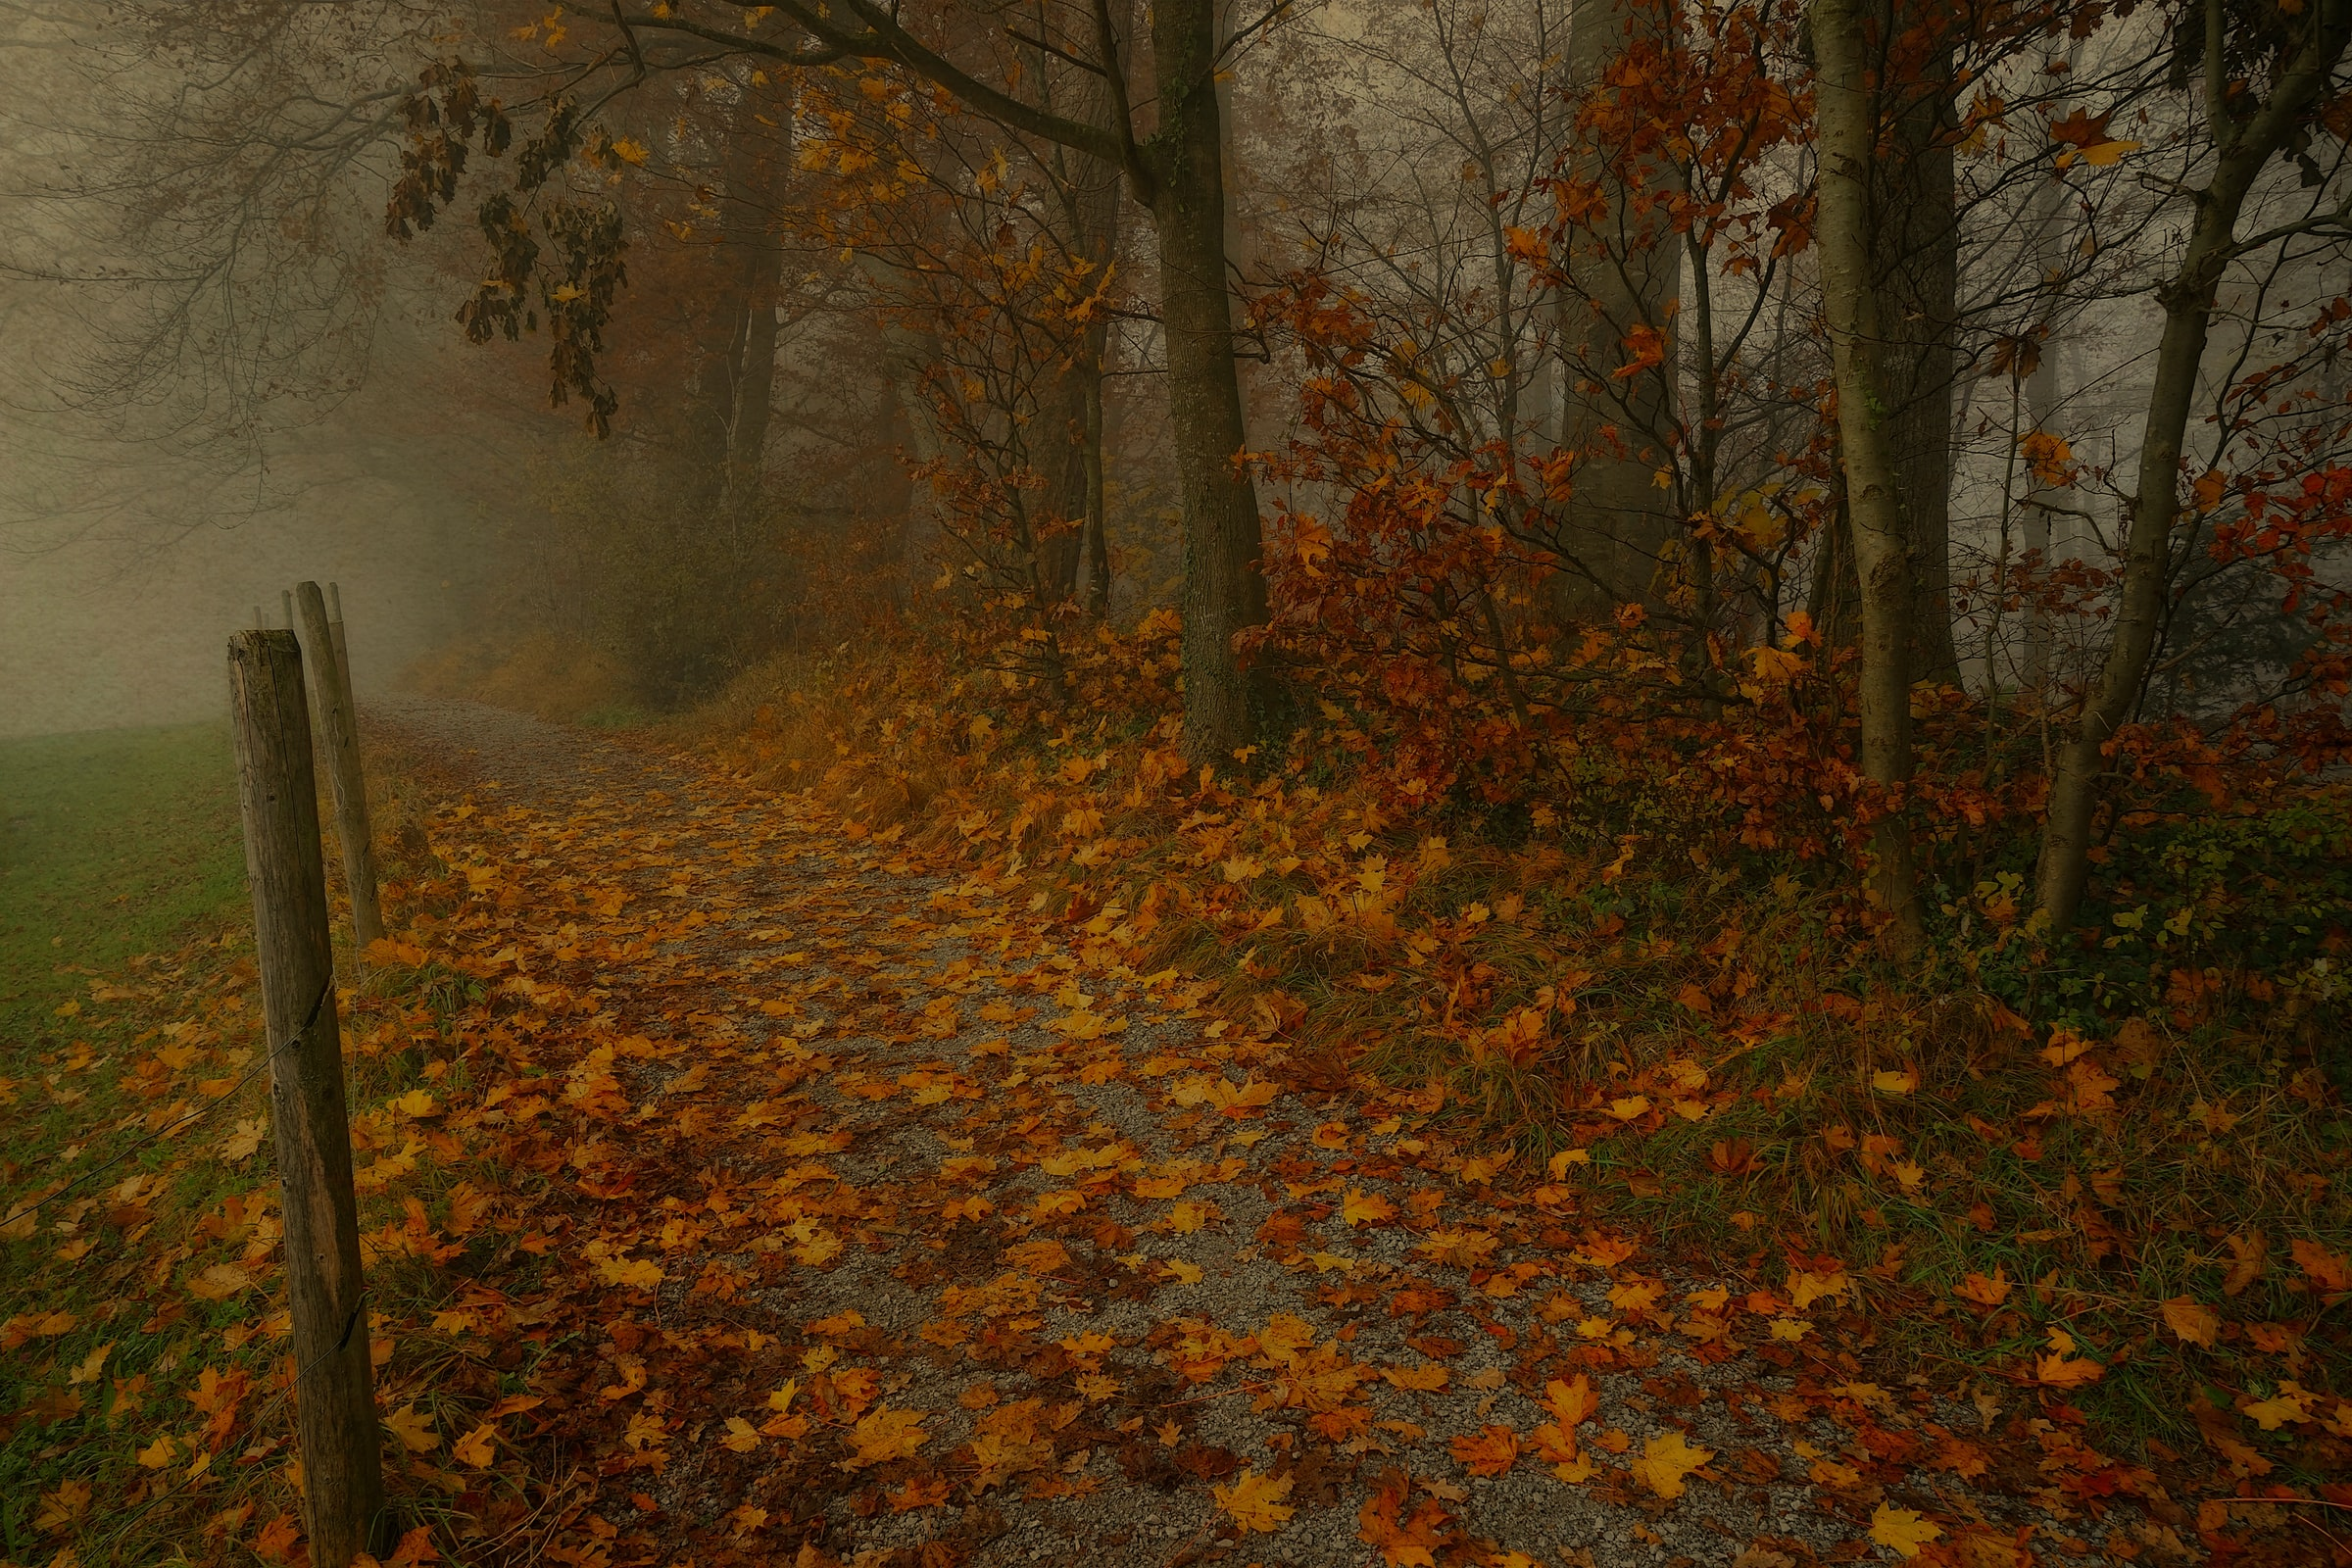 Scenic pathway landscape in fall